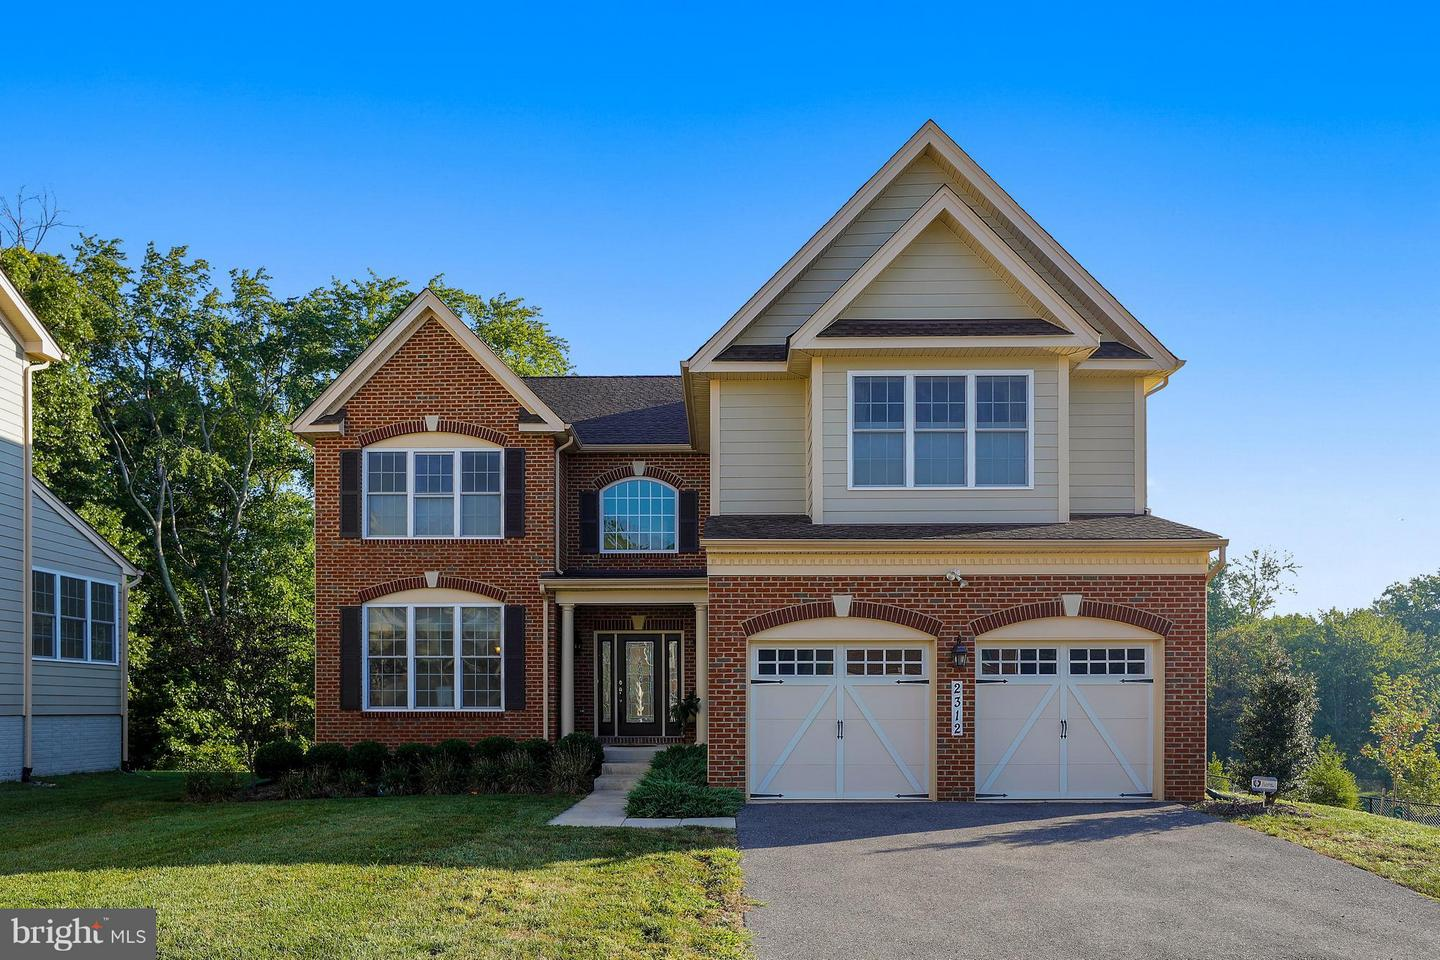 Single Family Home for Sale at 2312 Sycamore Place 2312 Sycamore Place Hanover, Maryland 21076 United States